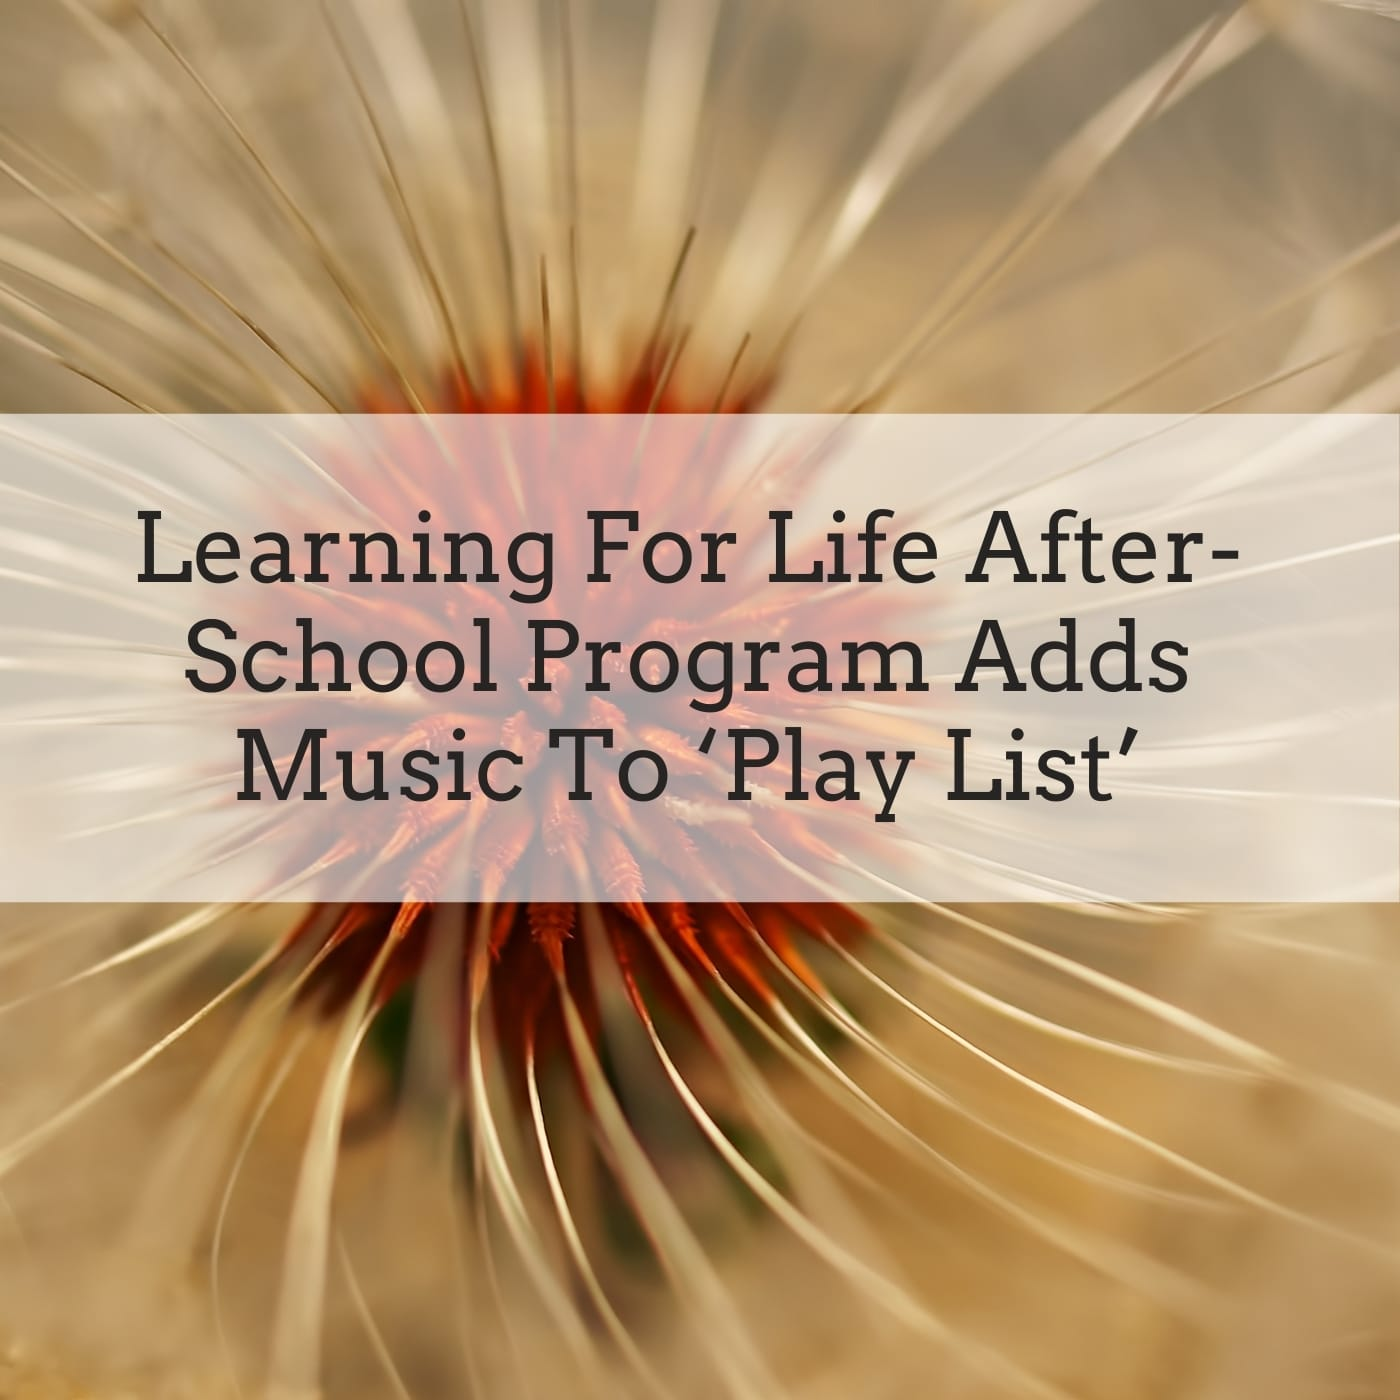 Learning For Life After School Program Adds Music To 'Play List'